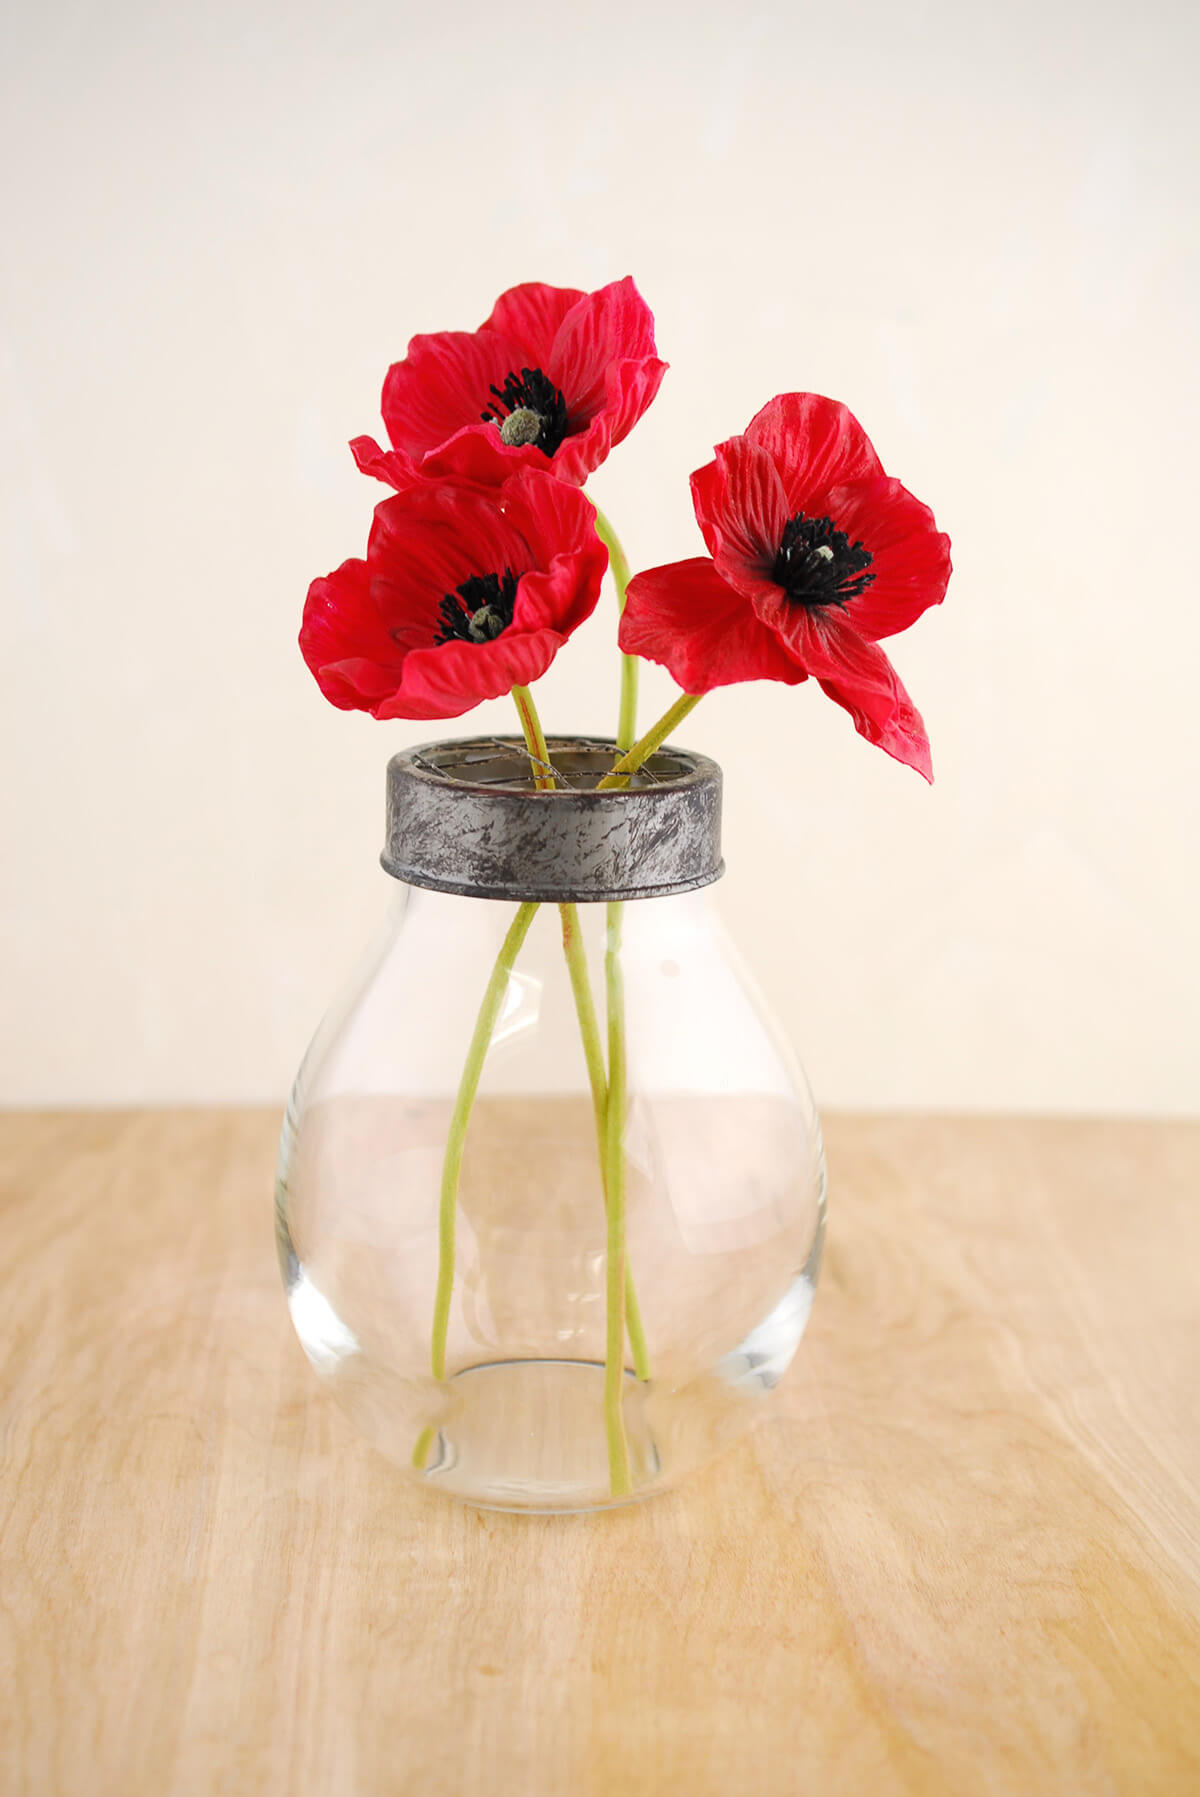 Free Photo Red Flower Vase Vase Flowers Flora Free Download